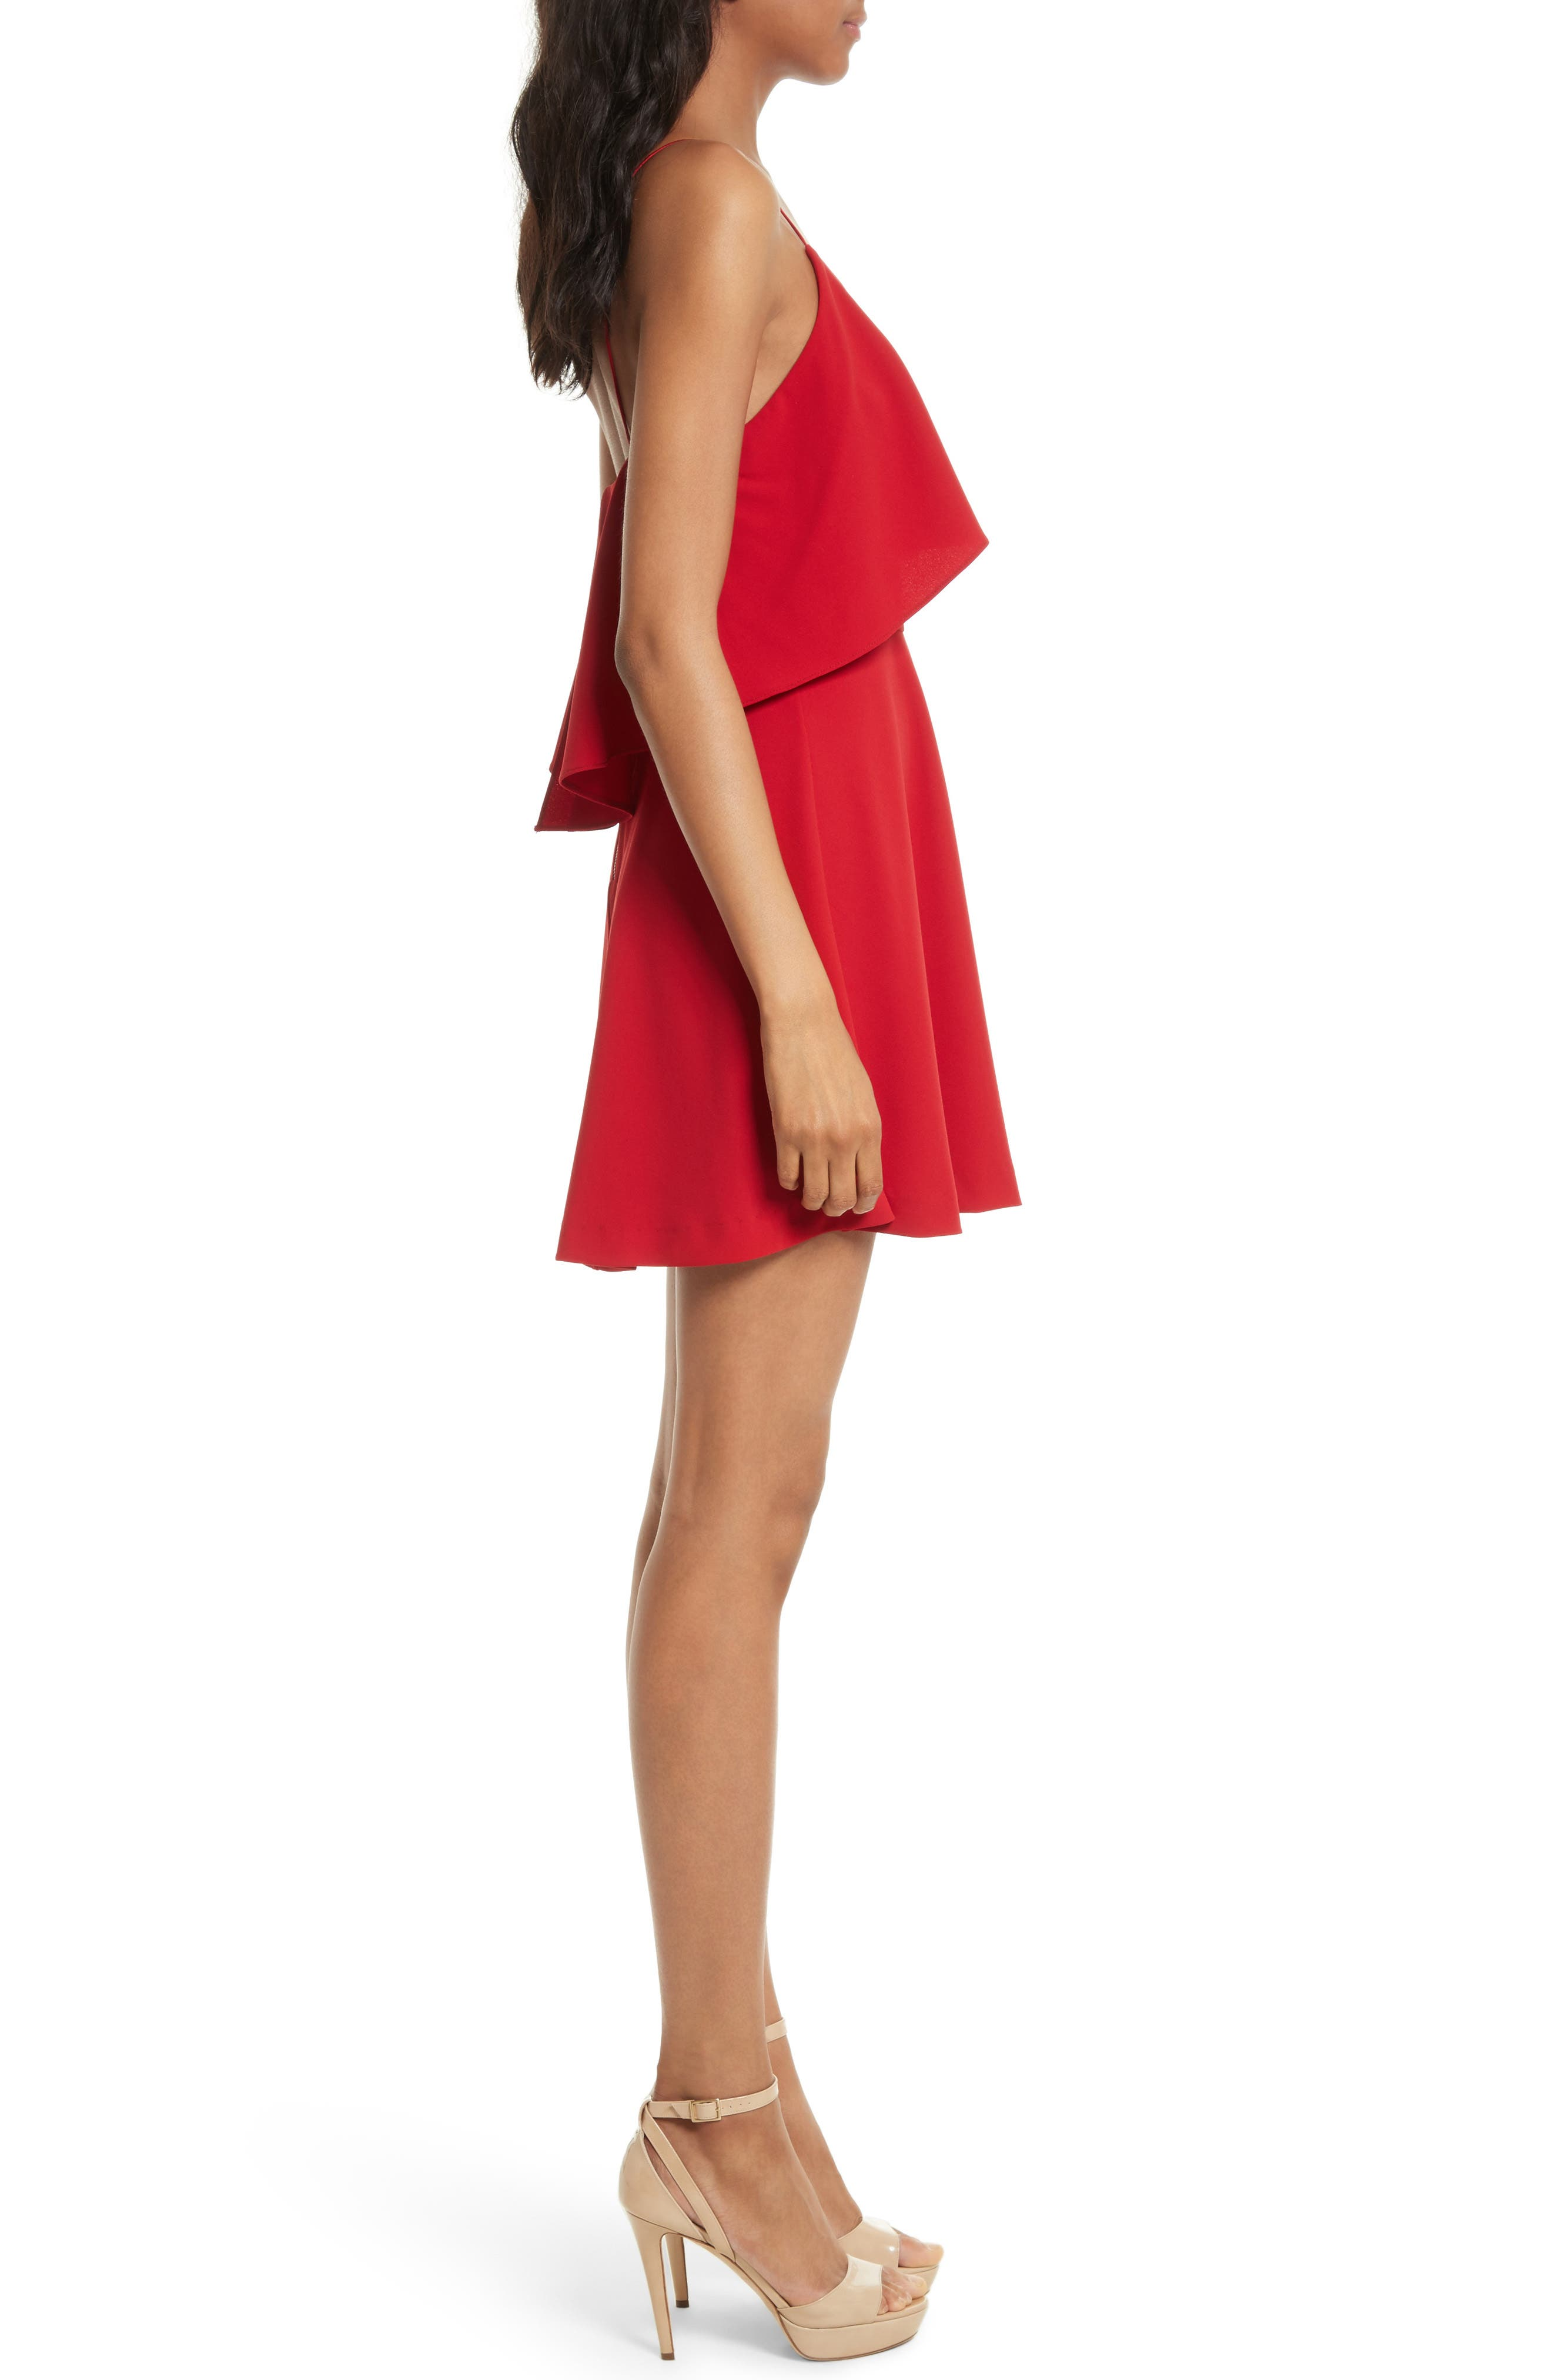 Kipp Layered Ruffle Short Dress,                             Alternate thumbnail 3, color,                             Deep Ruby